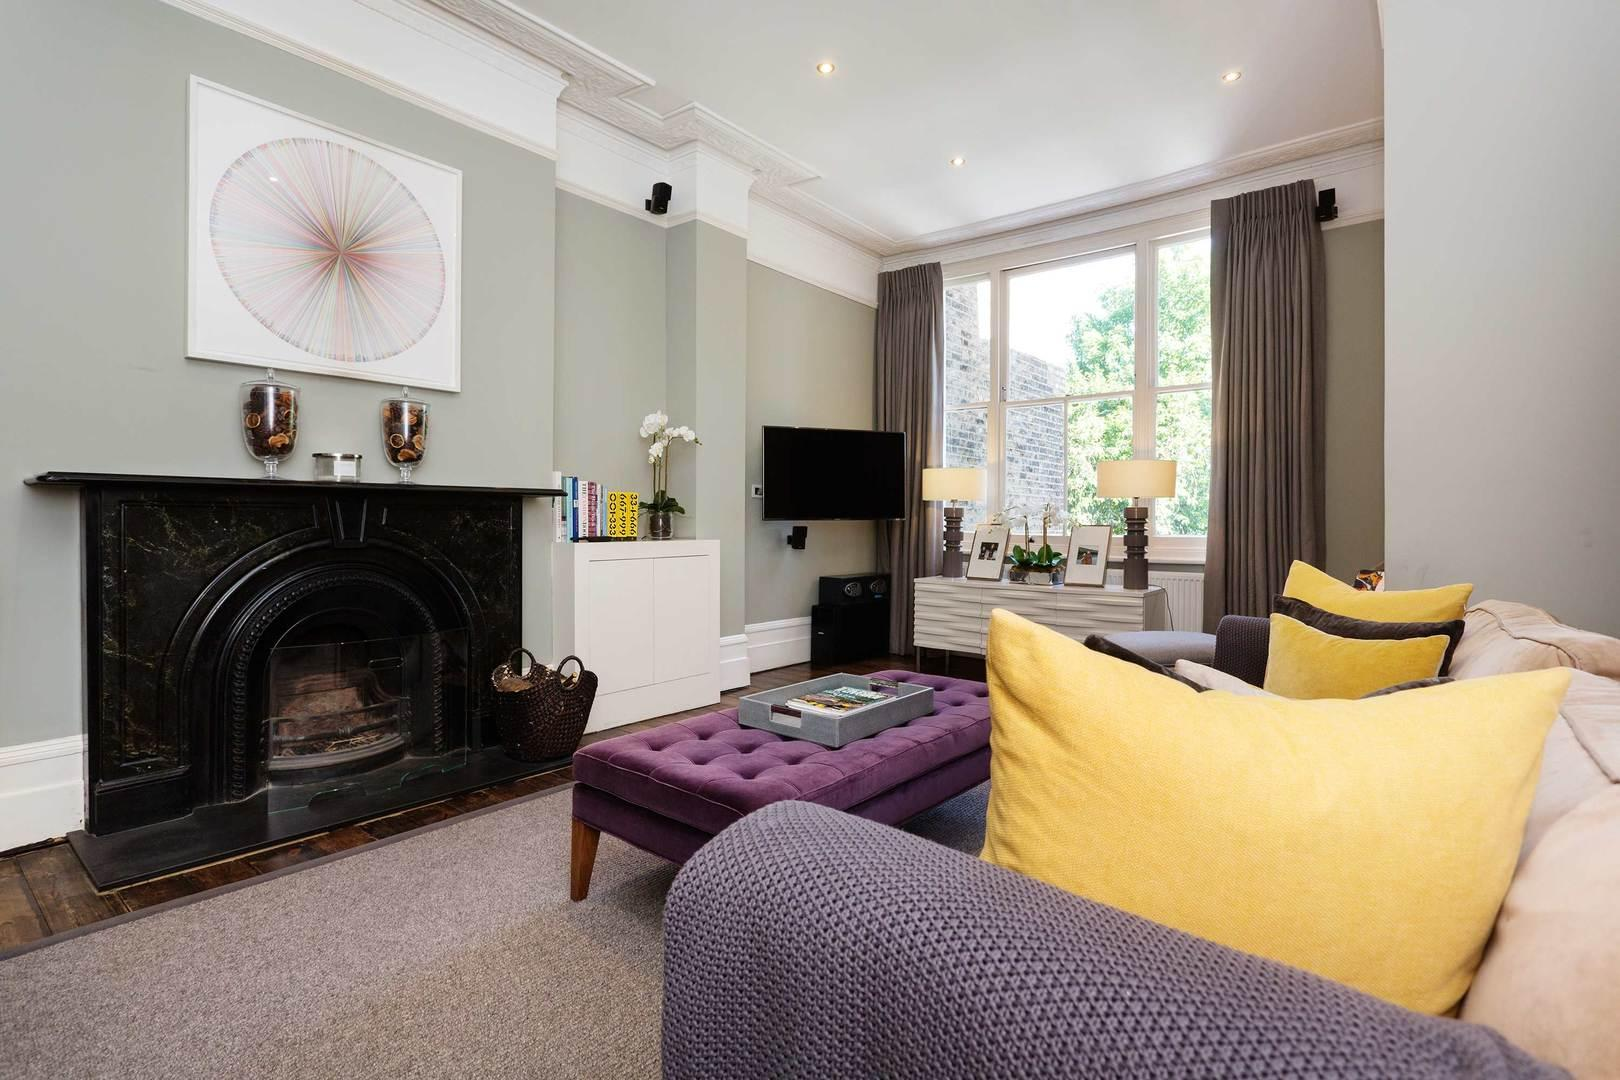 Property Image 2 - Light Spacious Clapham House with Private Roof Terrace